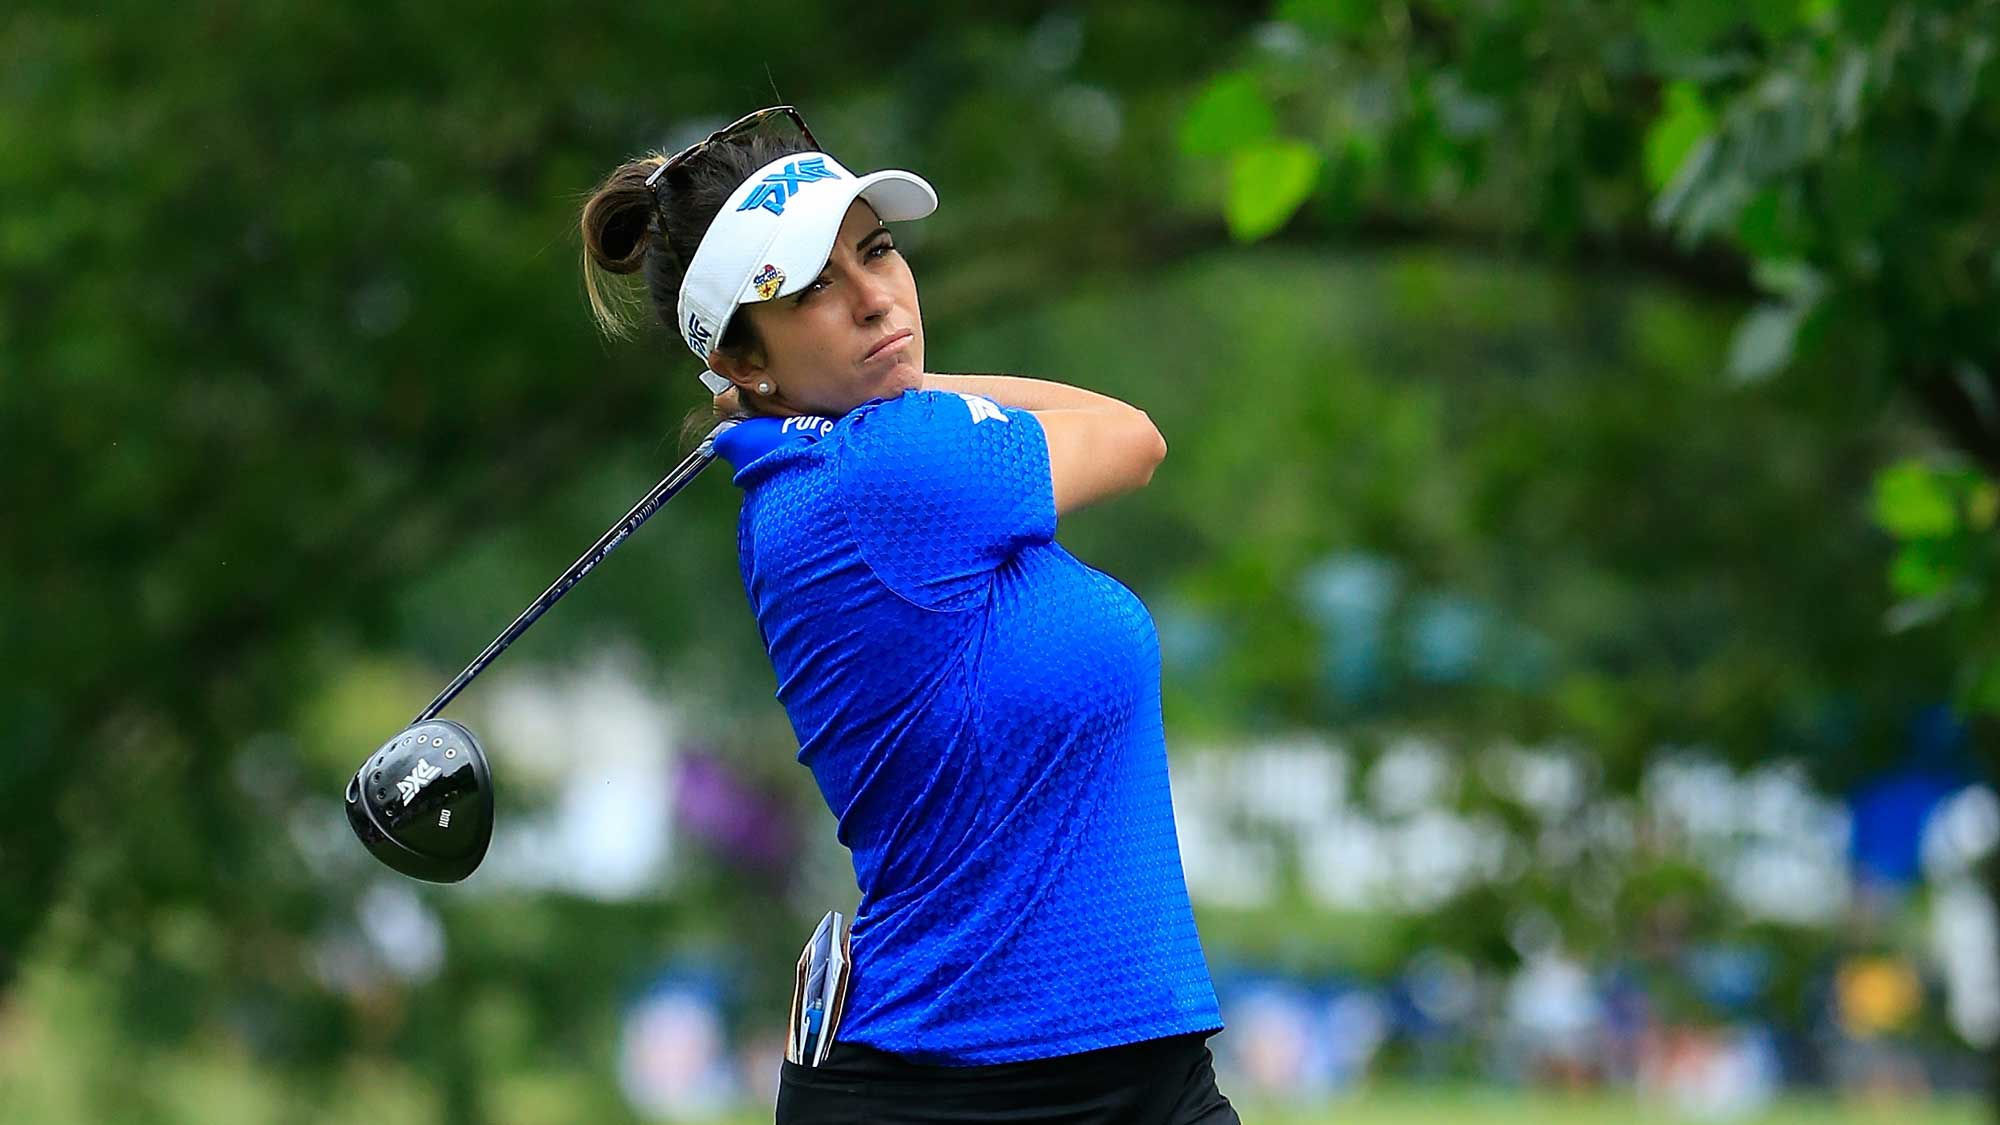 Piller keeps lead, Chien Pei-yun of Taiwan one back